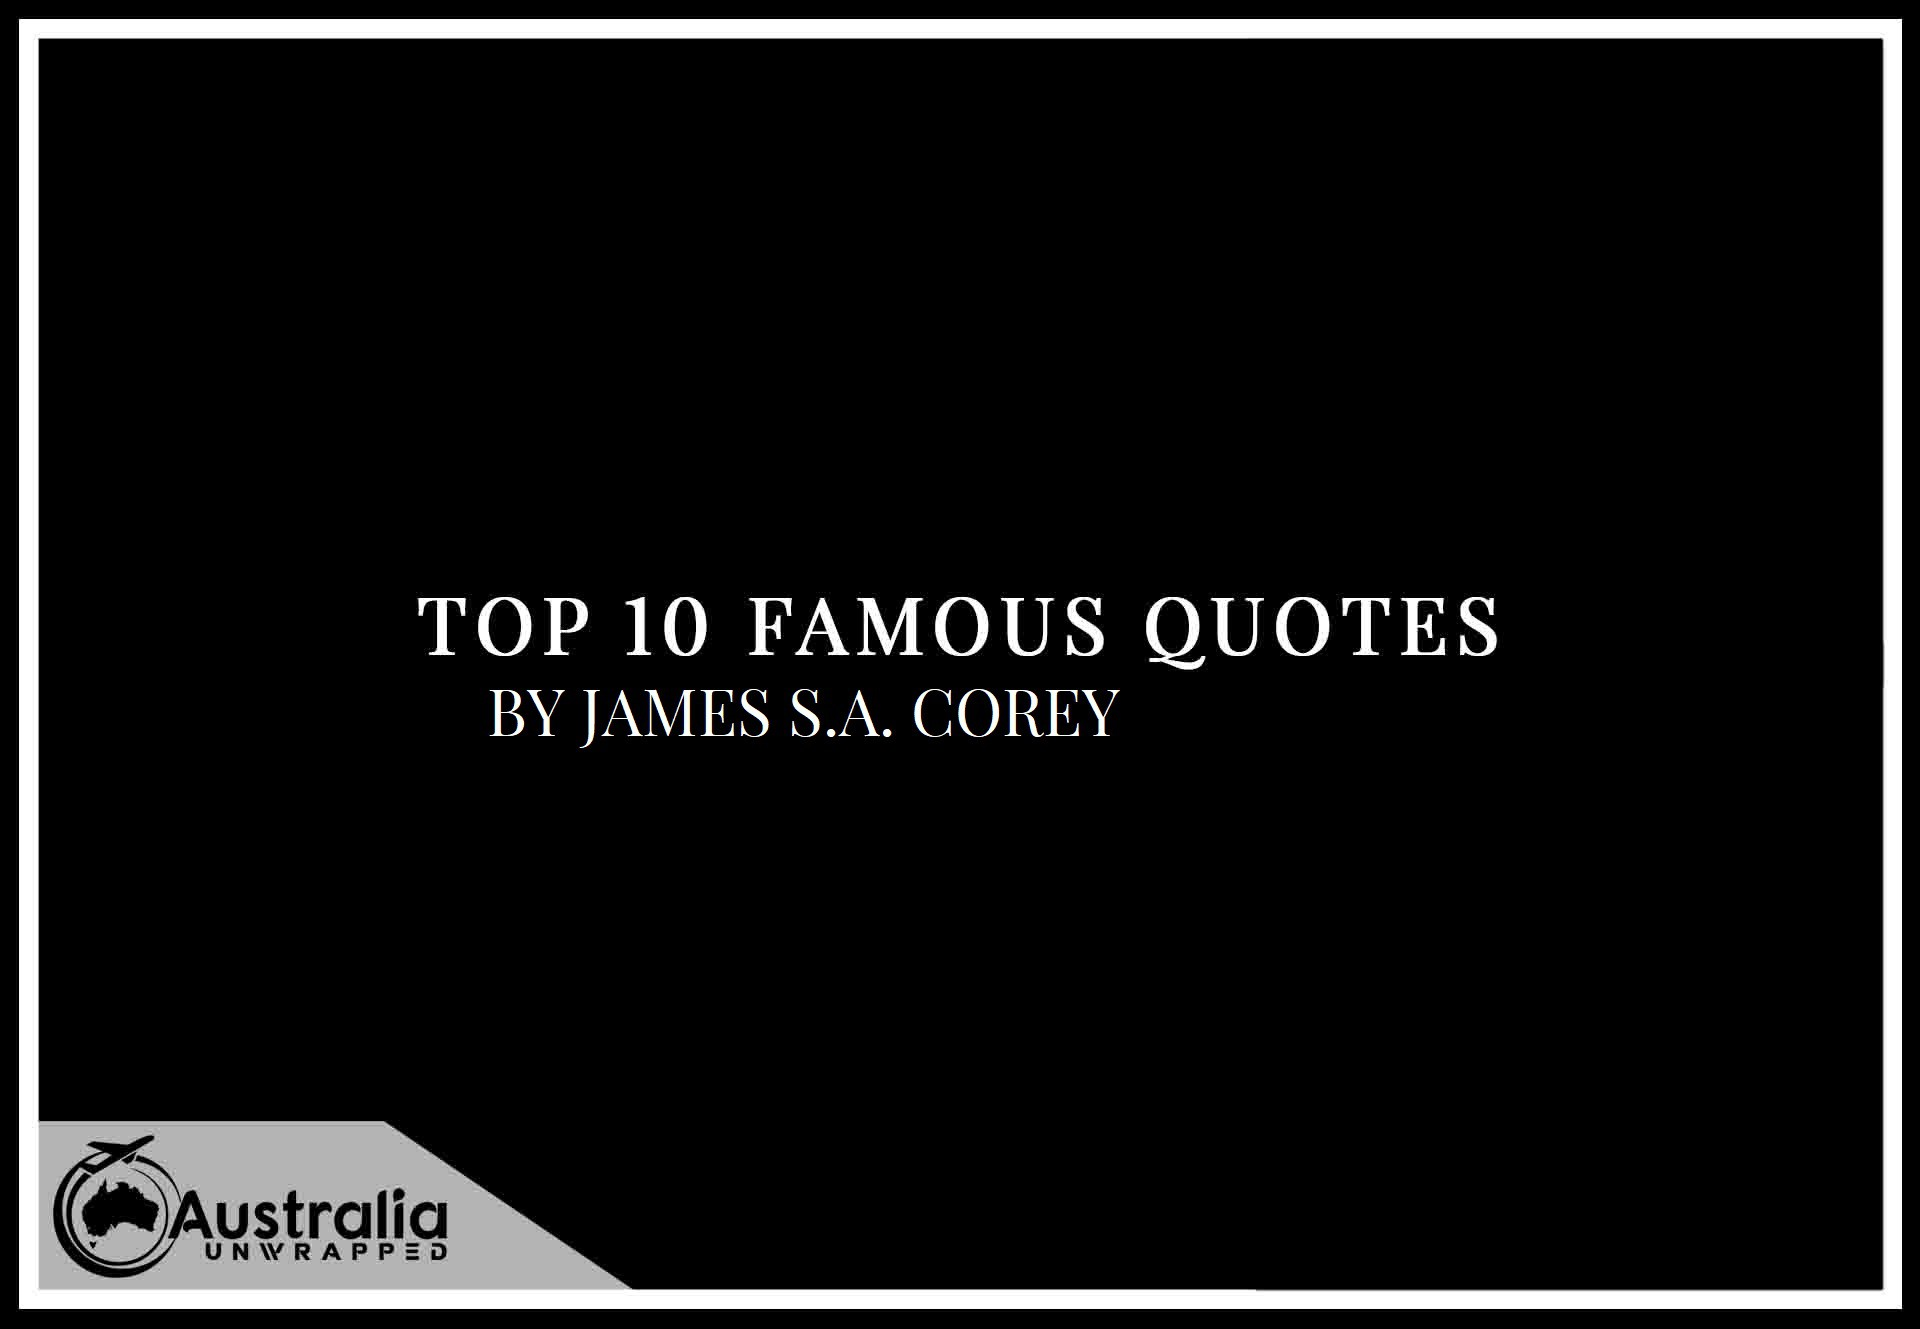 Top 10 Famous Quotes by Author James S.A. Corey